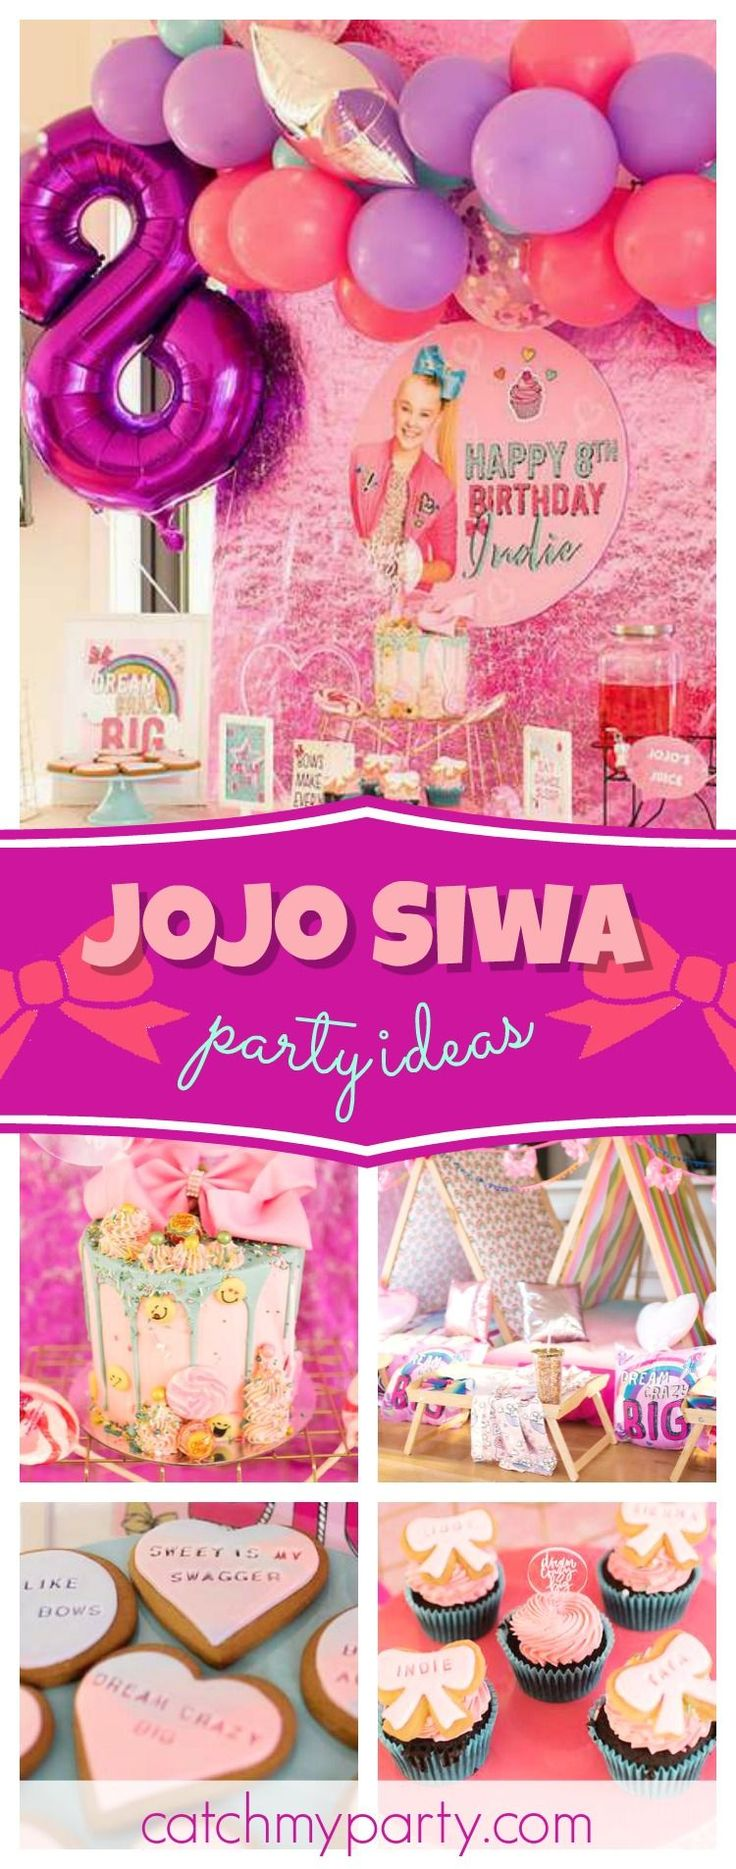 Check out this awesome JoJo Siwa 'Kid in a Candy Store' birthday party! The birthday cake decorated with emojis and candy is so cool!! See more party ideas and share yours at CatchMyParty.com #catchmyparty #partyideas #jojosiwa #girlbirthdayparty